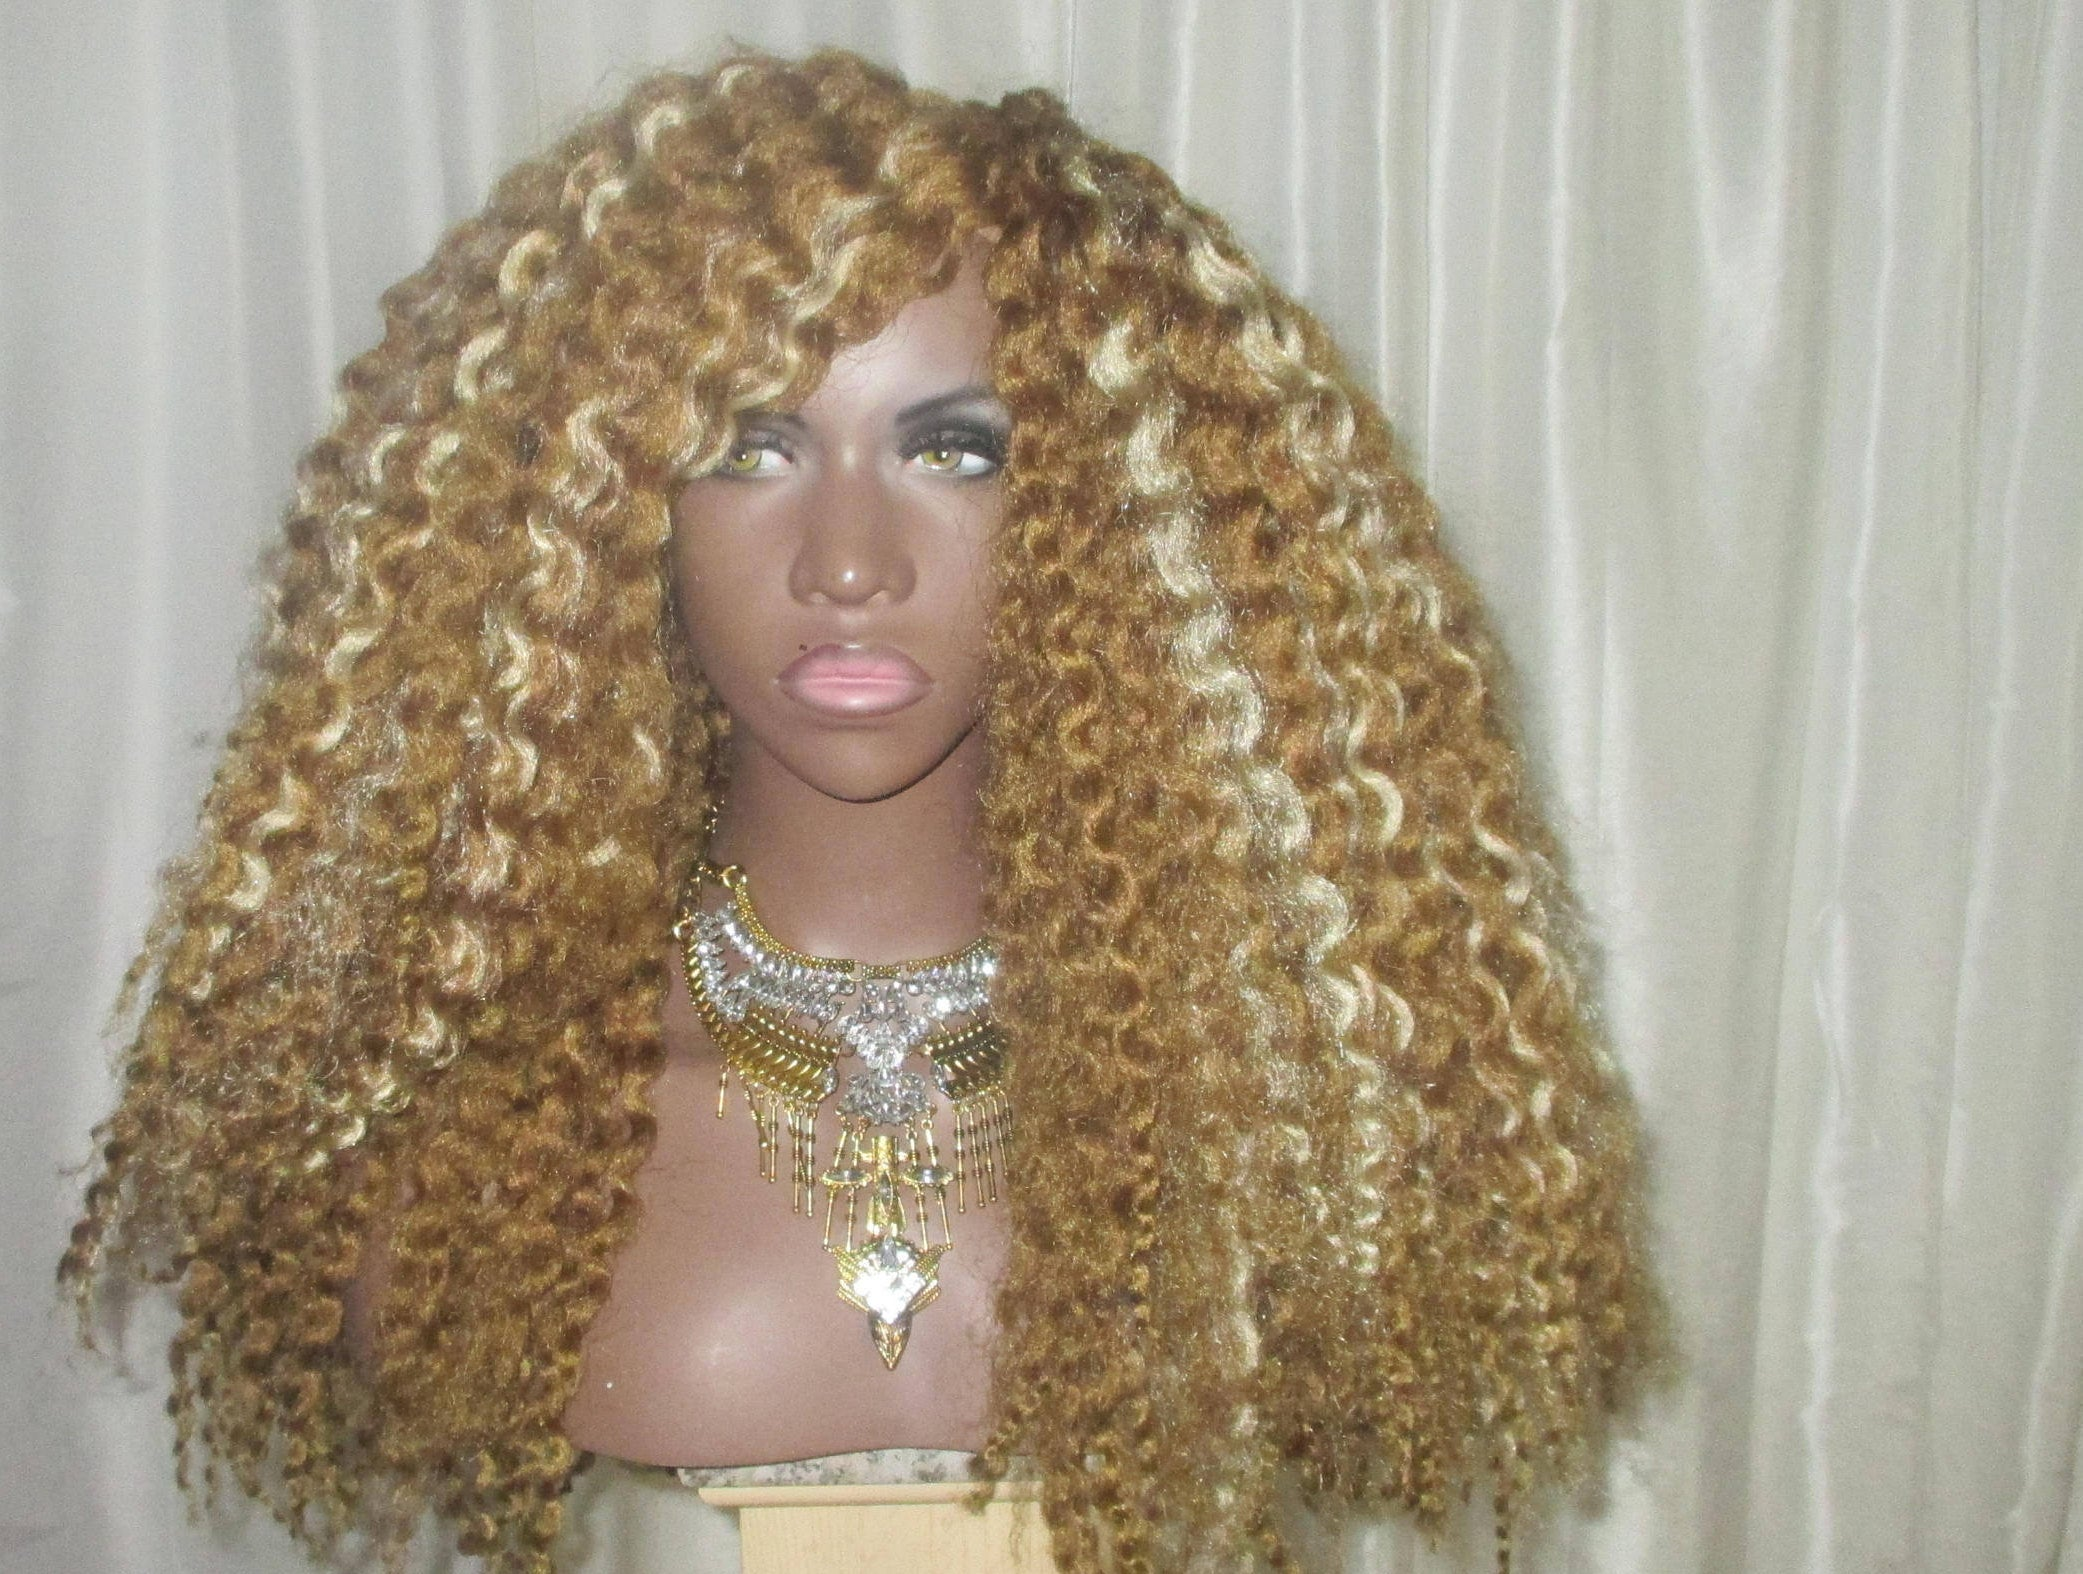 Essence Wigs Crochet Wig 'Sunny Mama' Twist Out (Long) Wig Blonde Curly BIG Hair